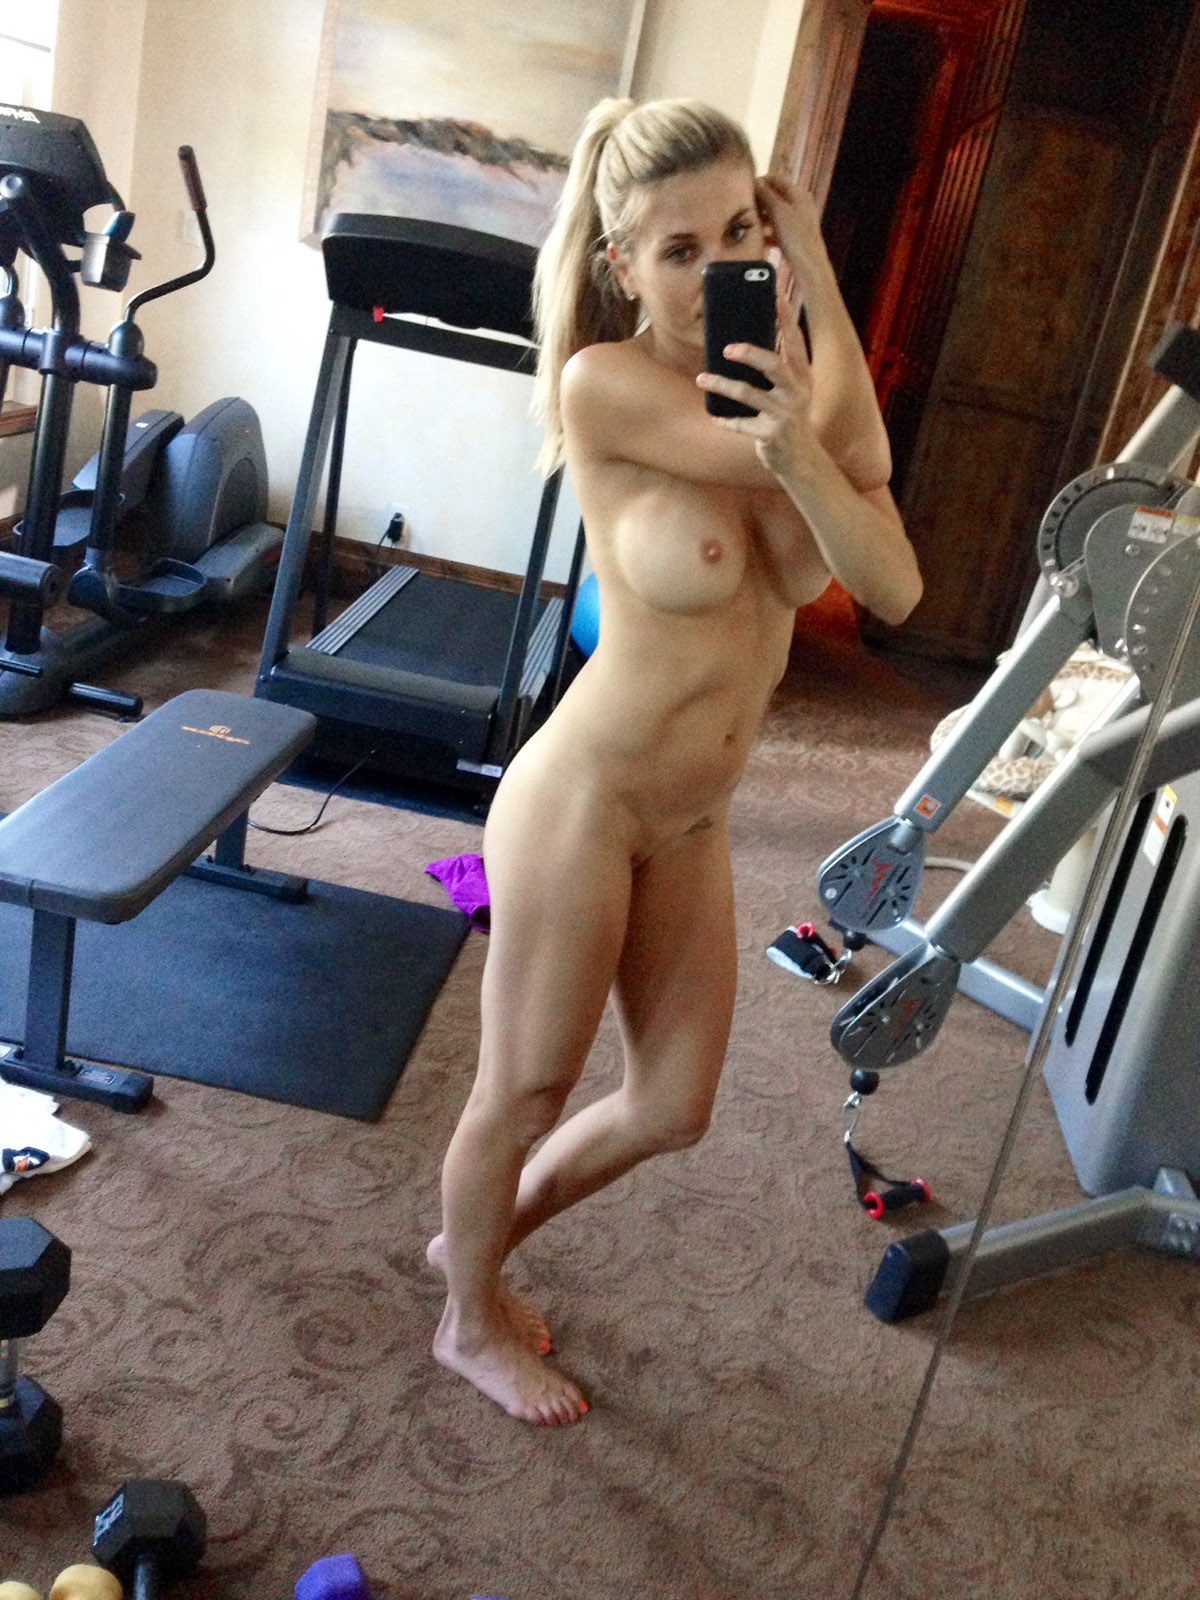 Pussy Lindsay Clubine naked (15 foto and video), Ass, Paparazzi, Boobs, legs 2019